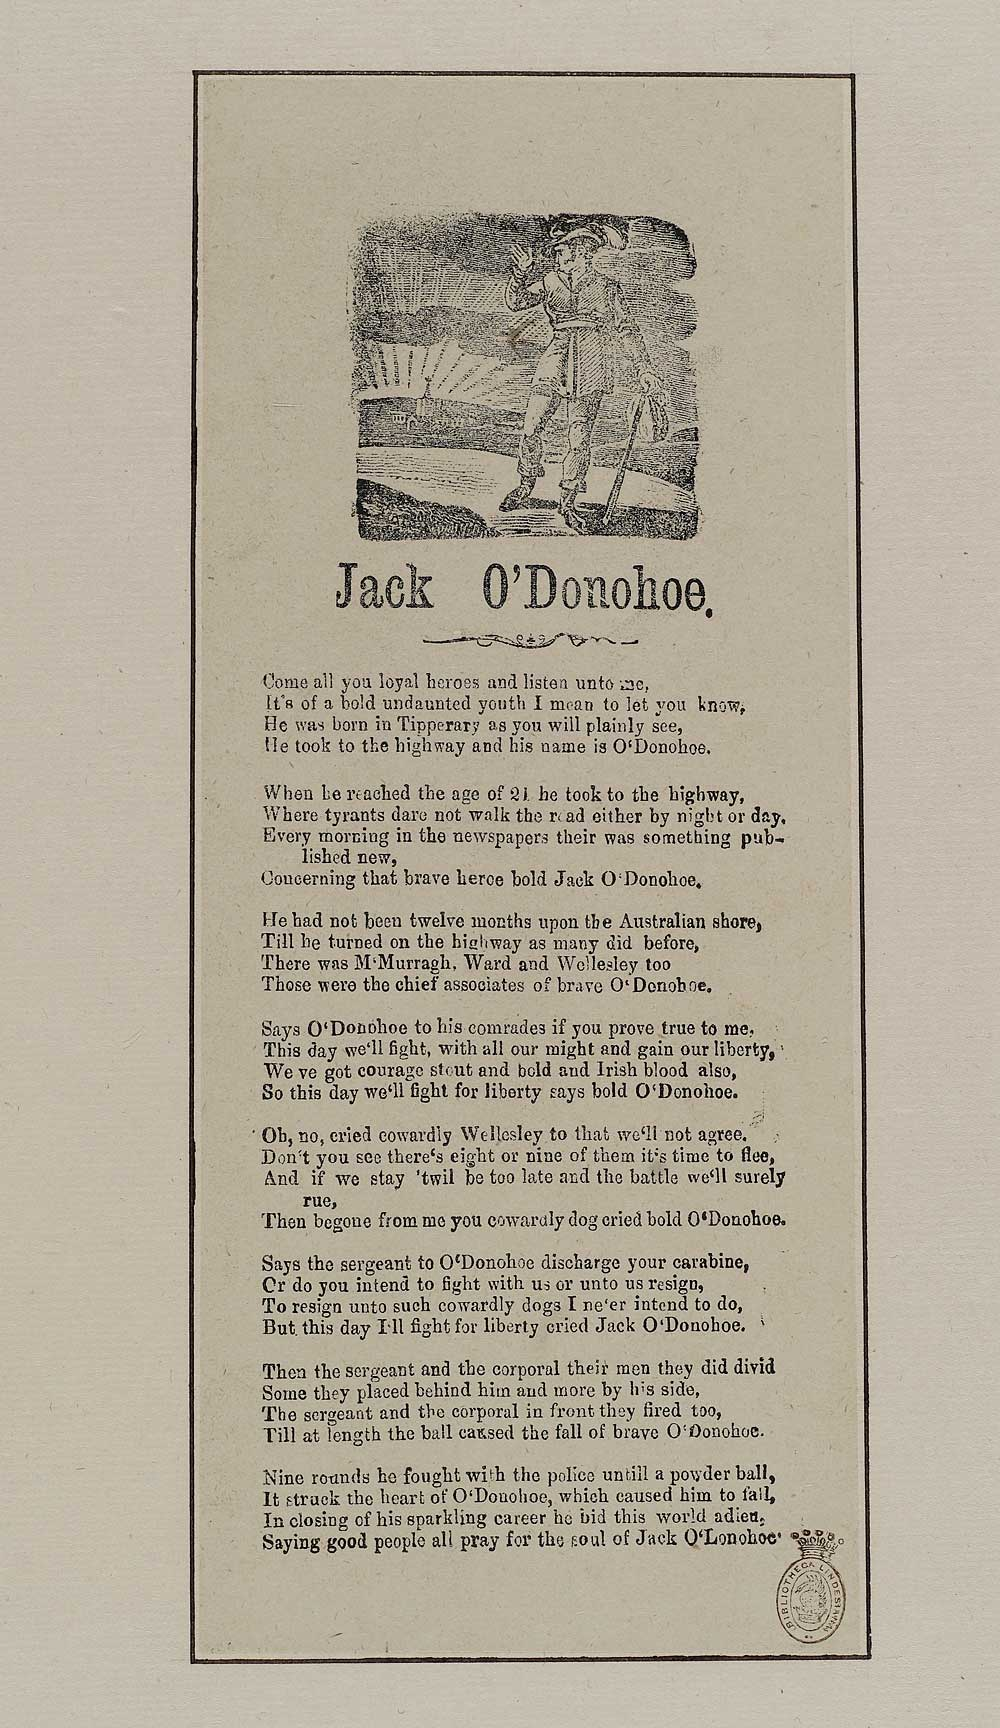 Jack O'Donohoe - Ireland - English ballads - National